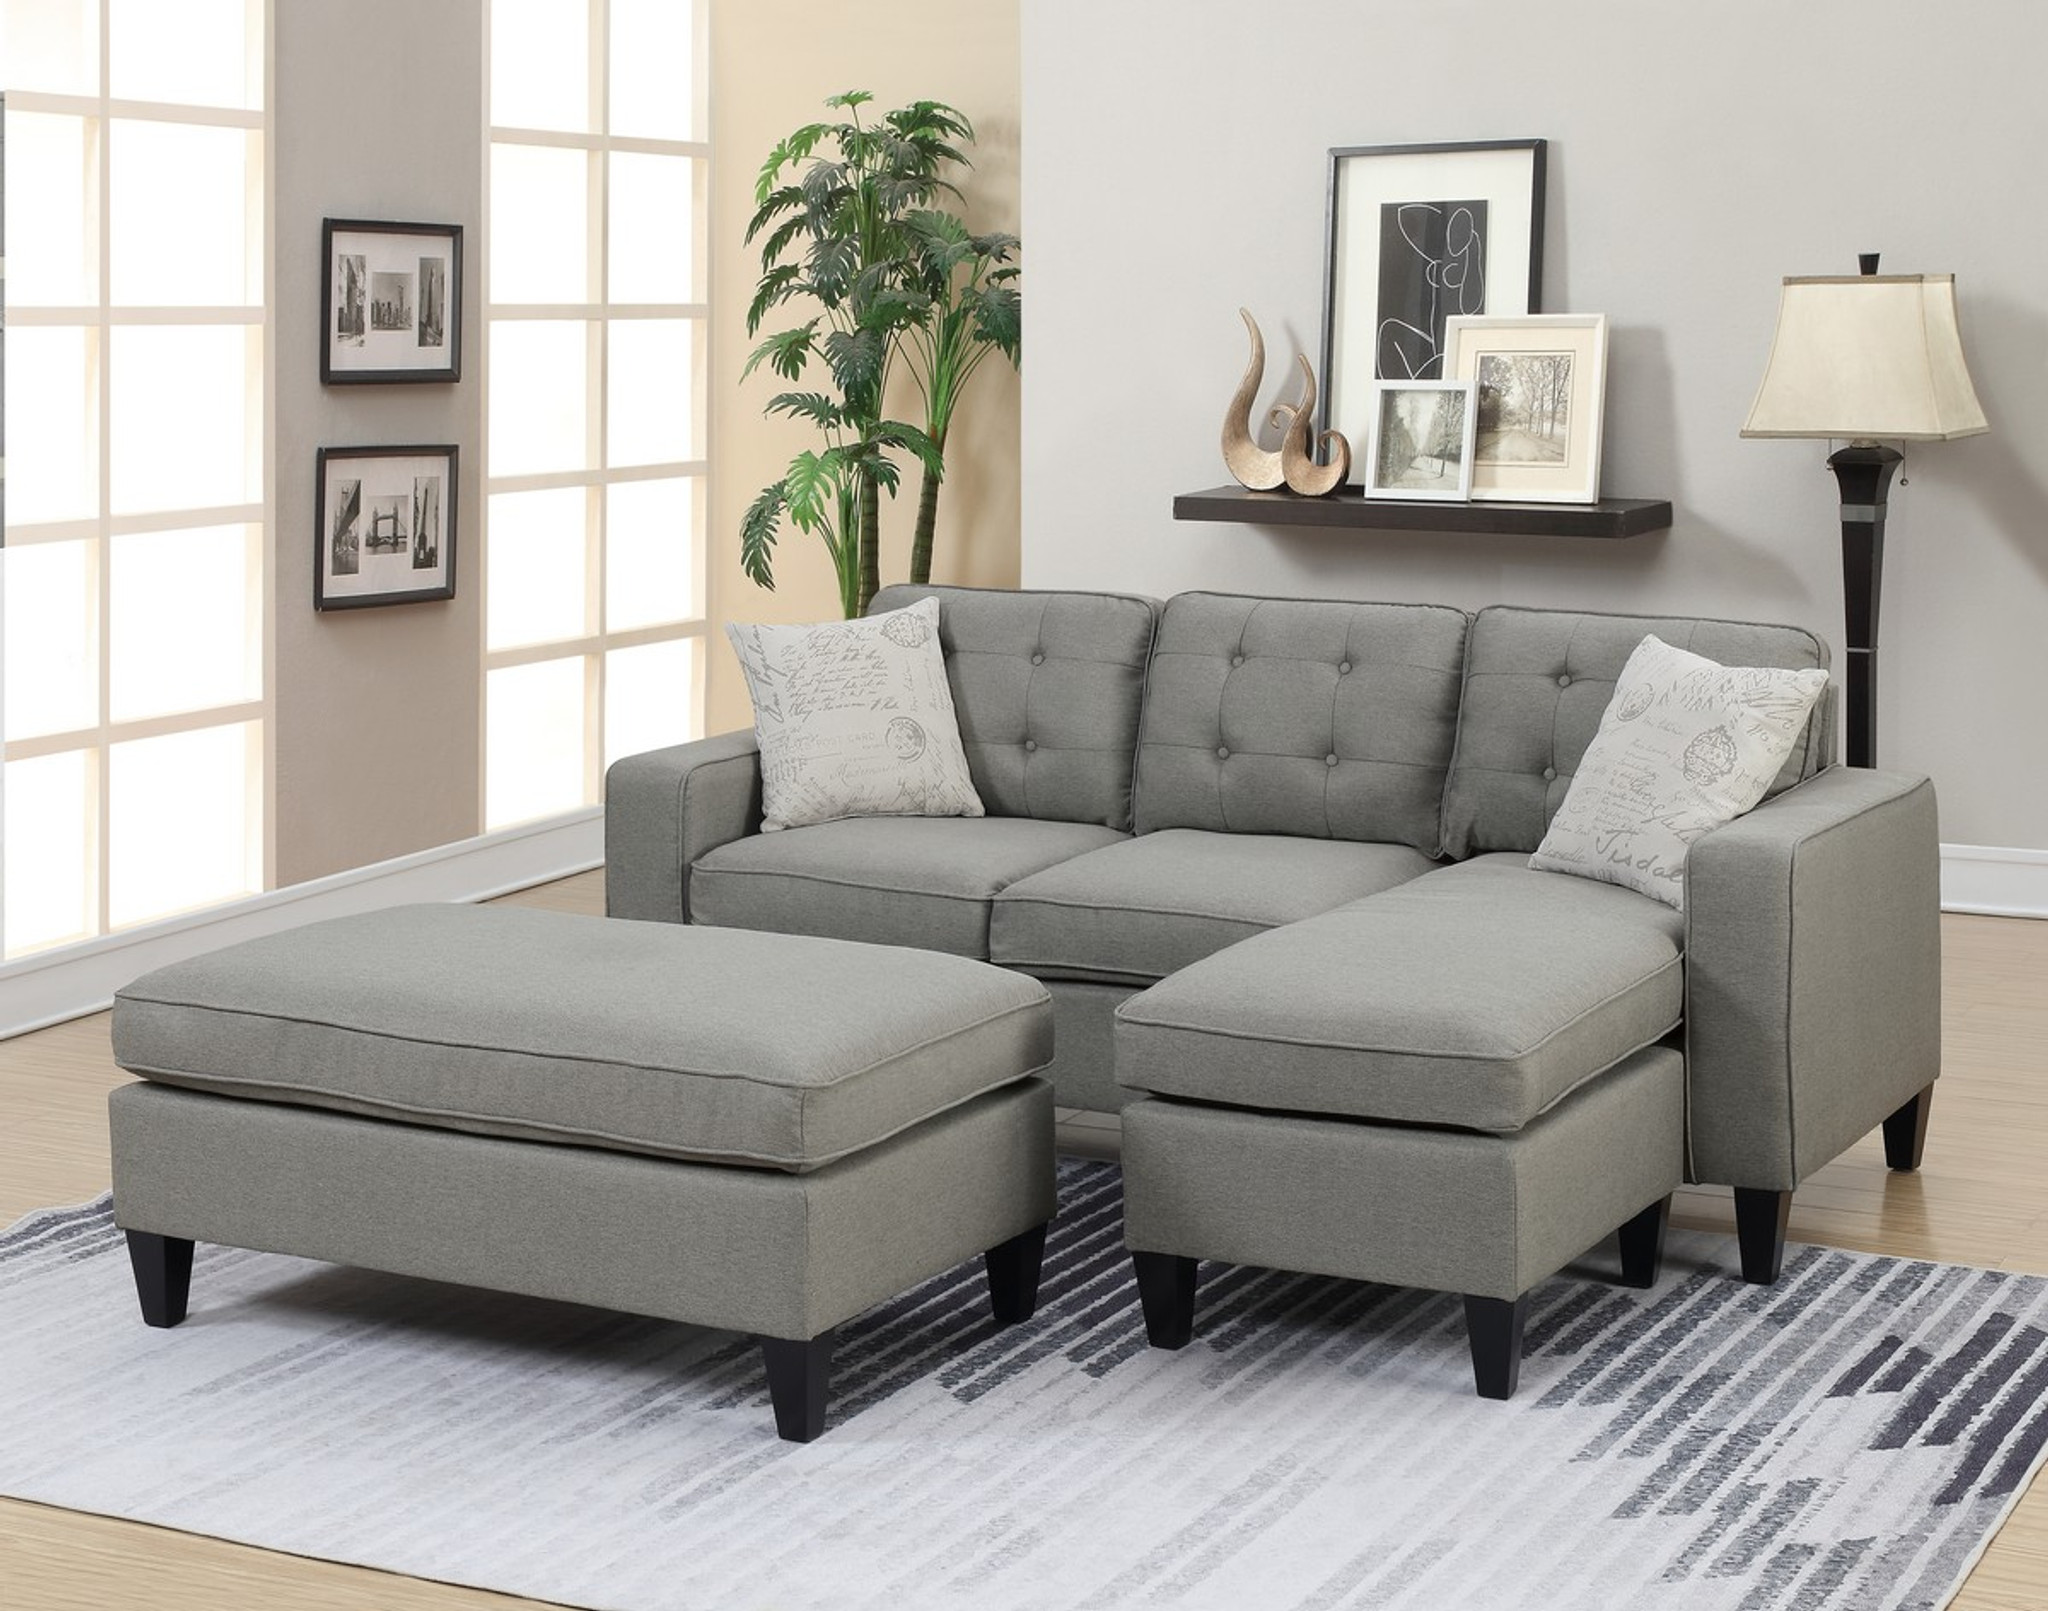 Marvelous 3Pc Marco Sectional Set With Ottoman In Light Grey Alphanode Cool Chair Designs And Ideas Alphanodeonline